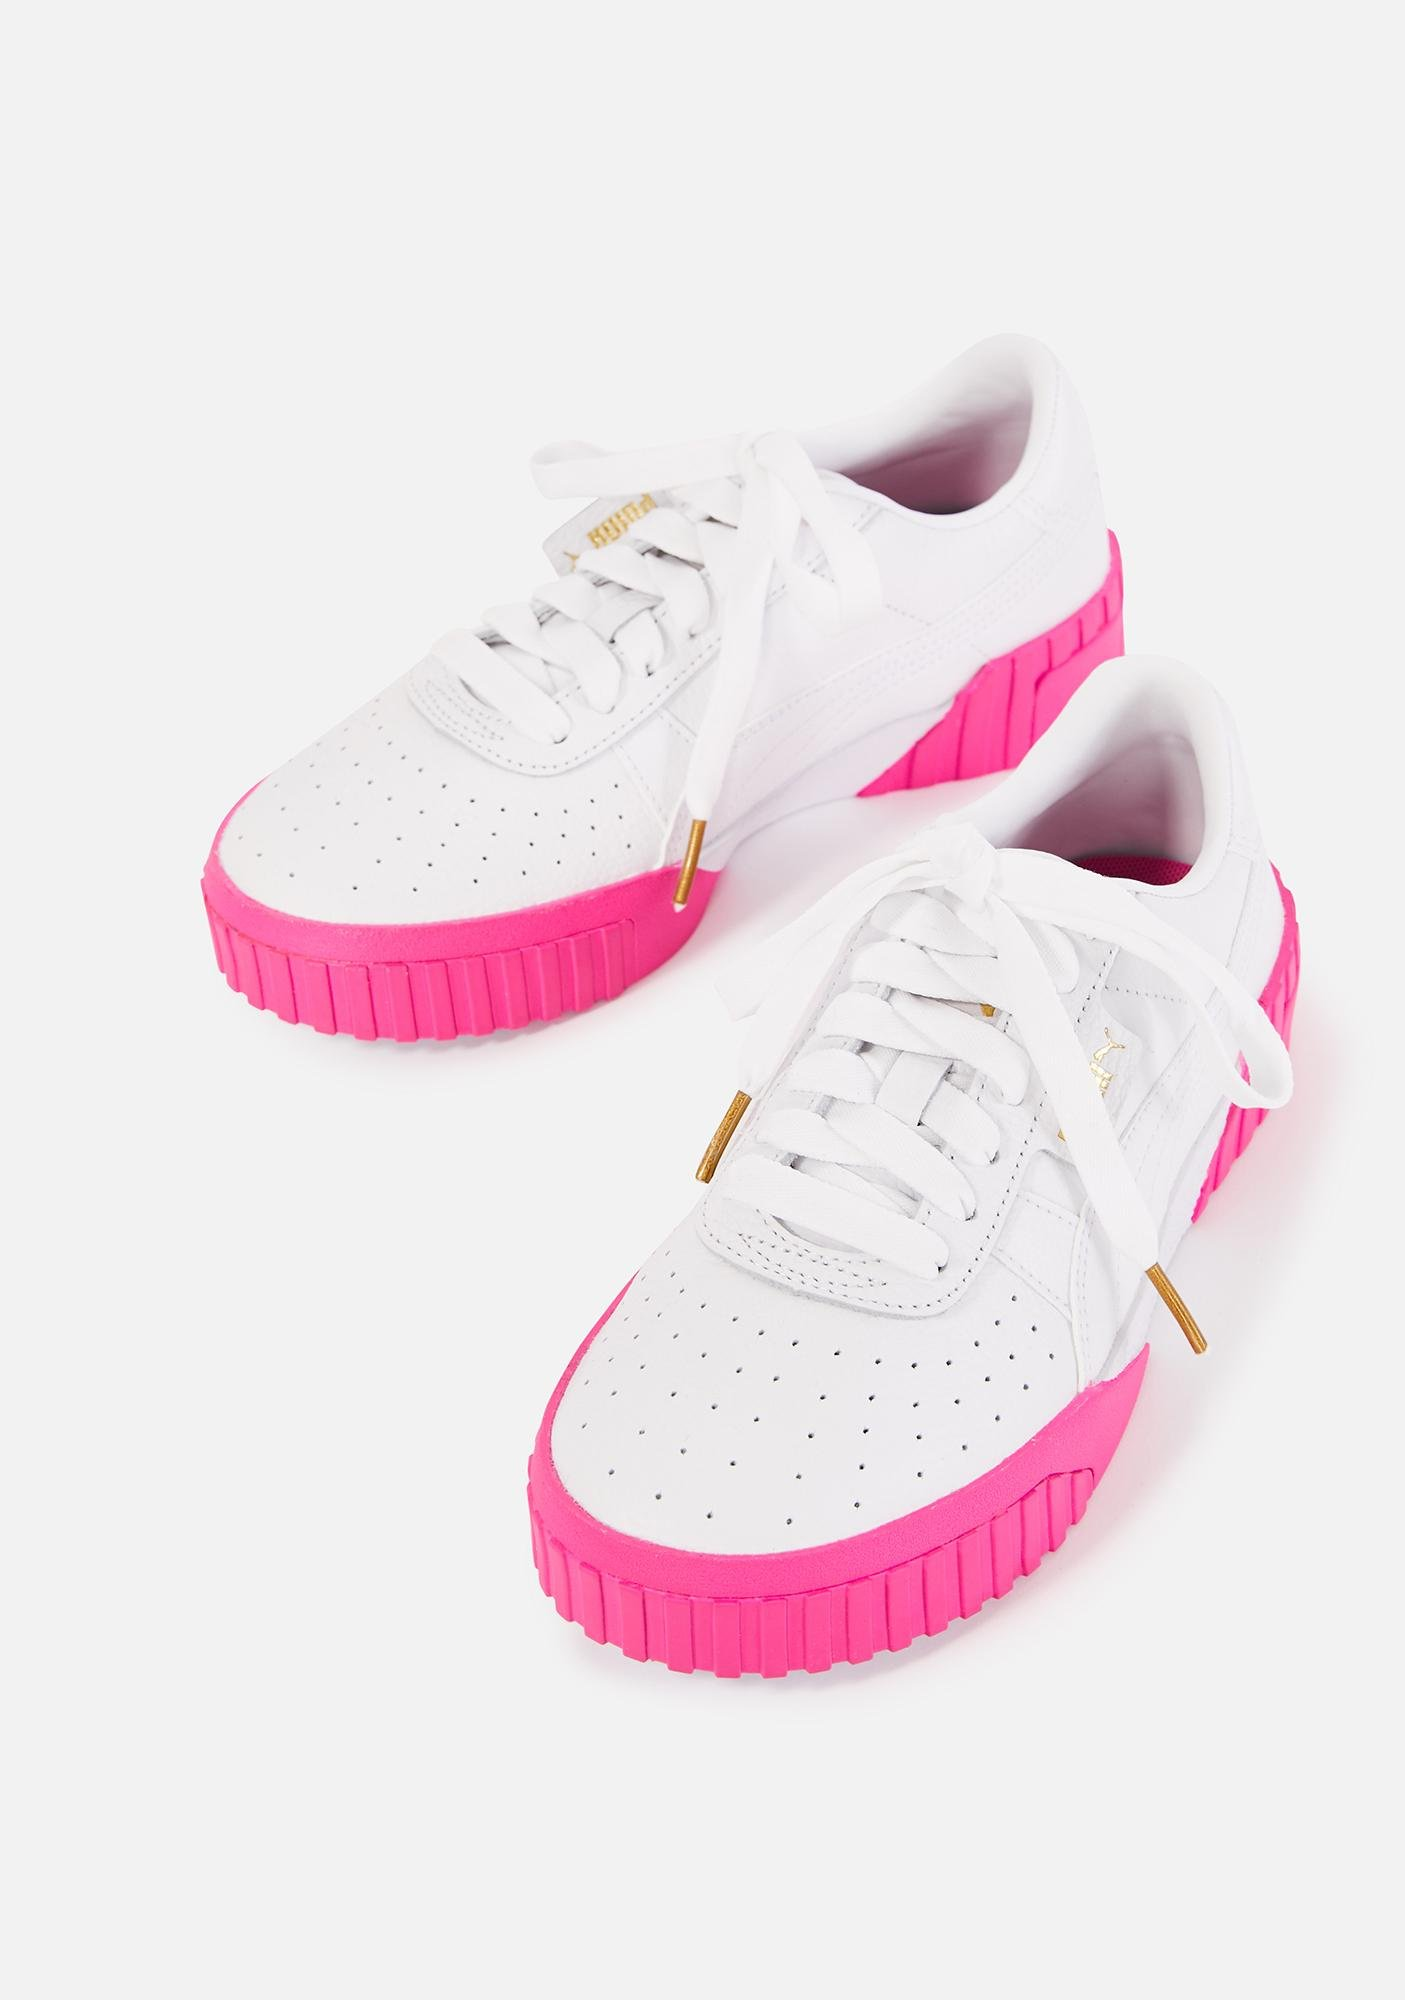 PUMA Pink Sole Cali Leather Sneakers